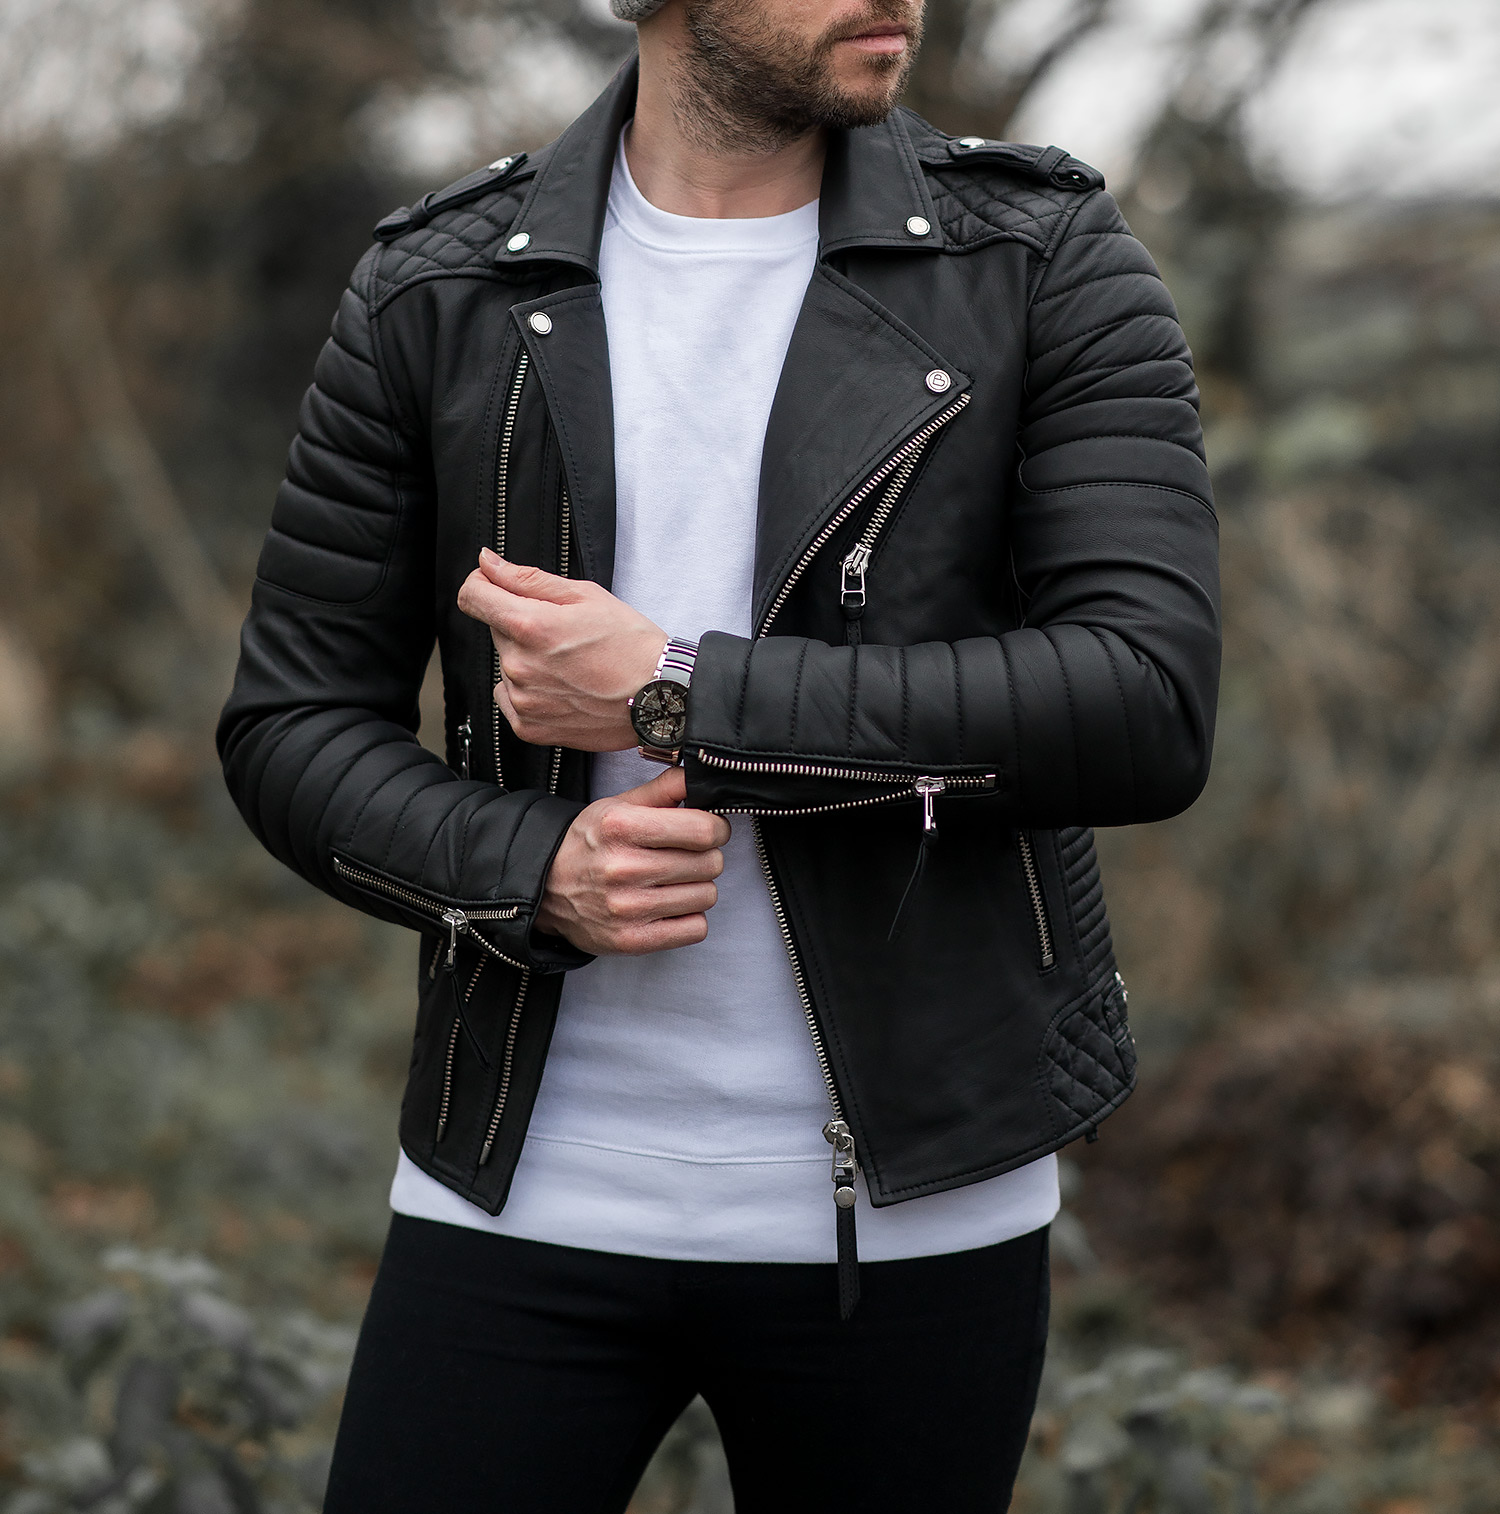 ba71d51cd78 Boda Skins Kay Michaels Men s Leather Jacket Review